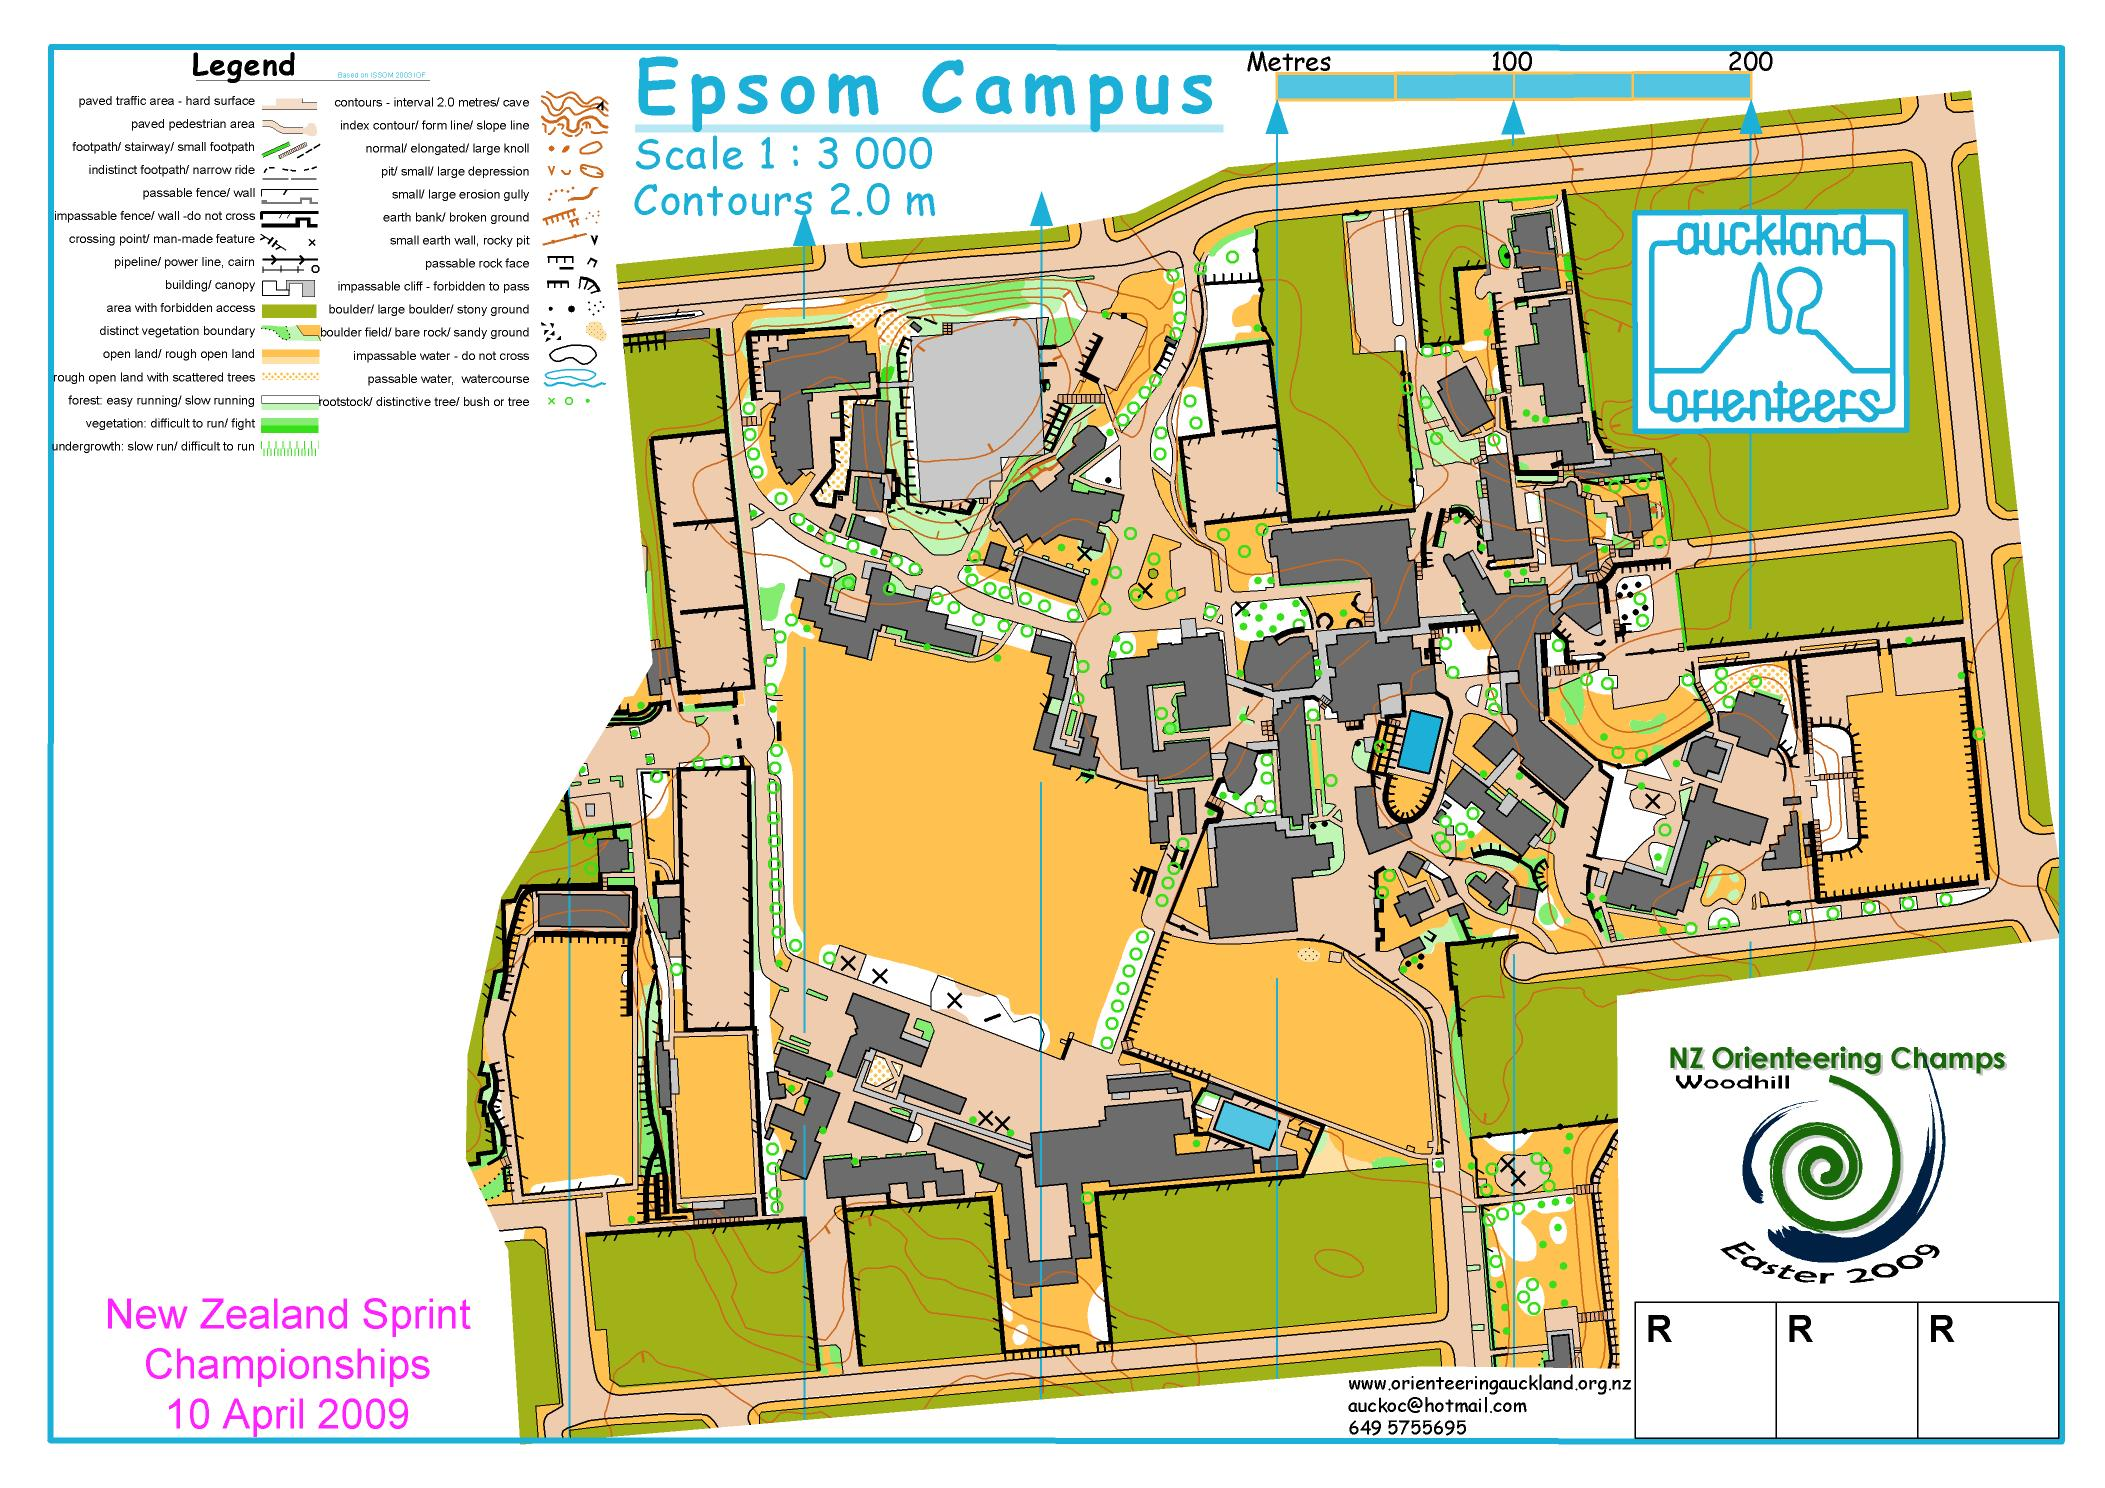 World masters games 2017 world masters orienteering wmoc2017 old maps sprint qualifier map as used nz orienteering champs 2009 biocorpaavc